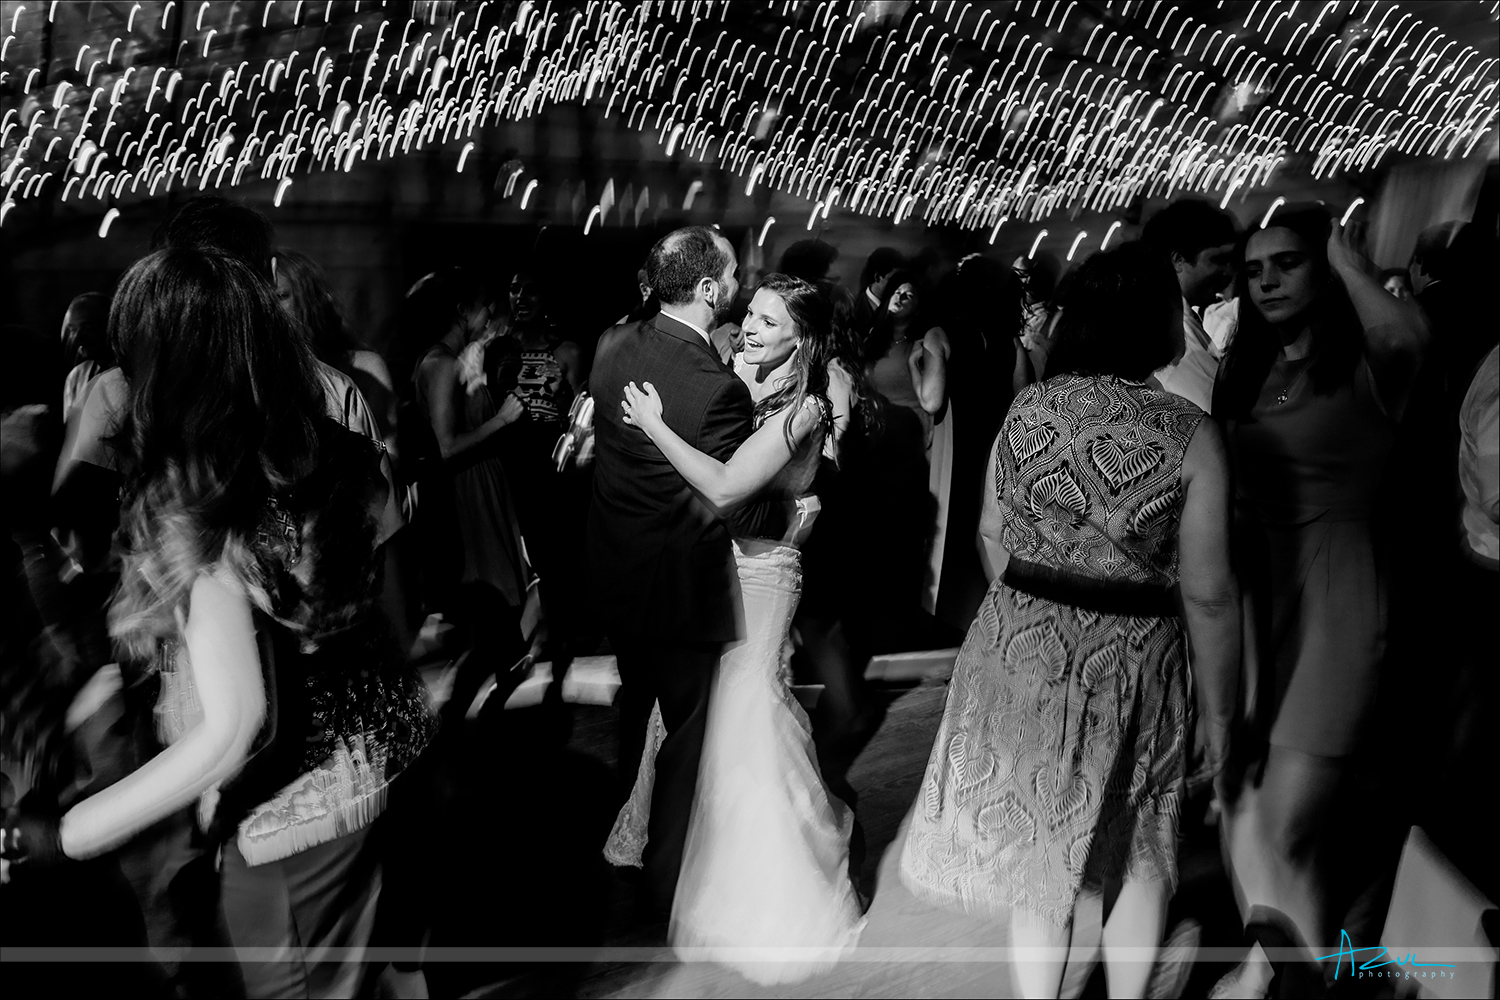 Slow shutter creative wedding photography in low light conditions inside a barn in Chapel Hill.